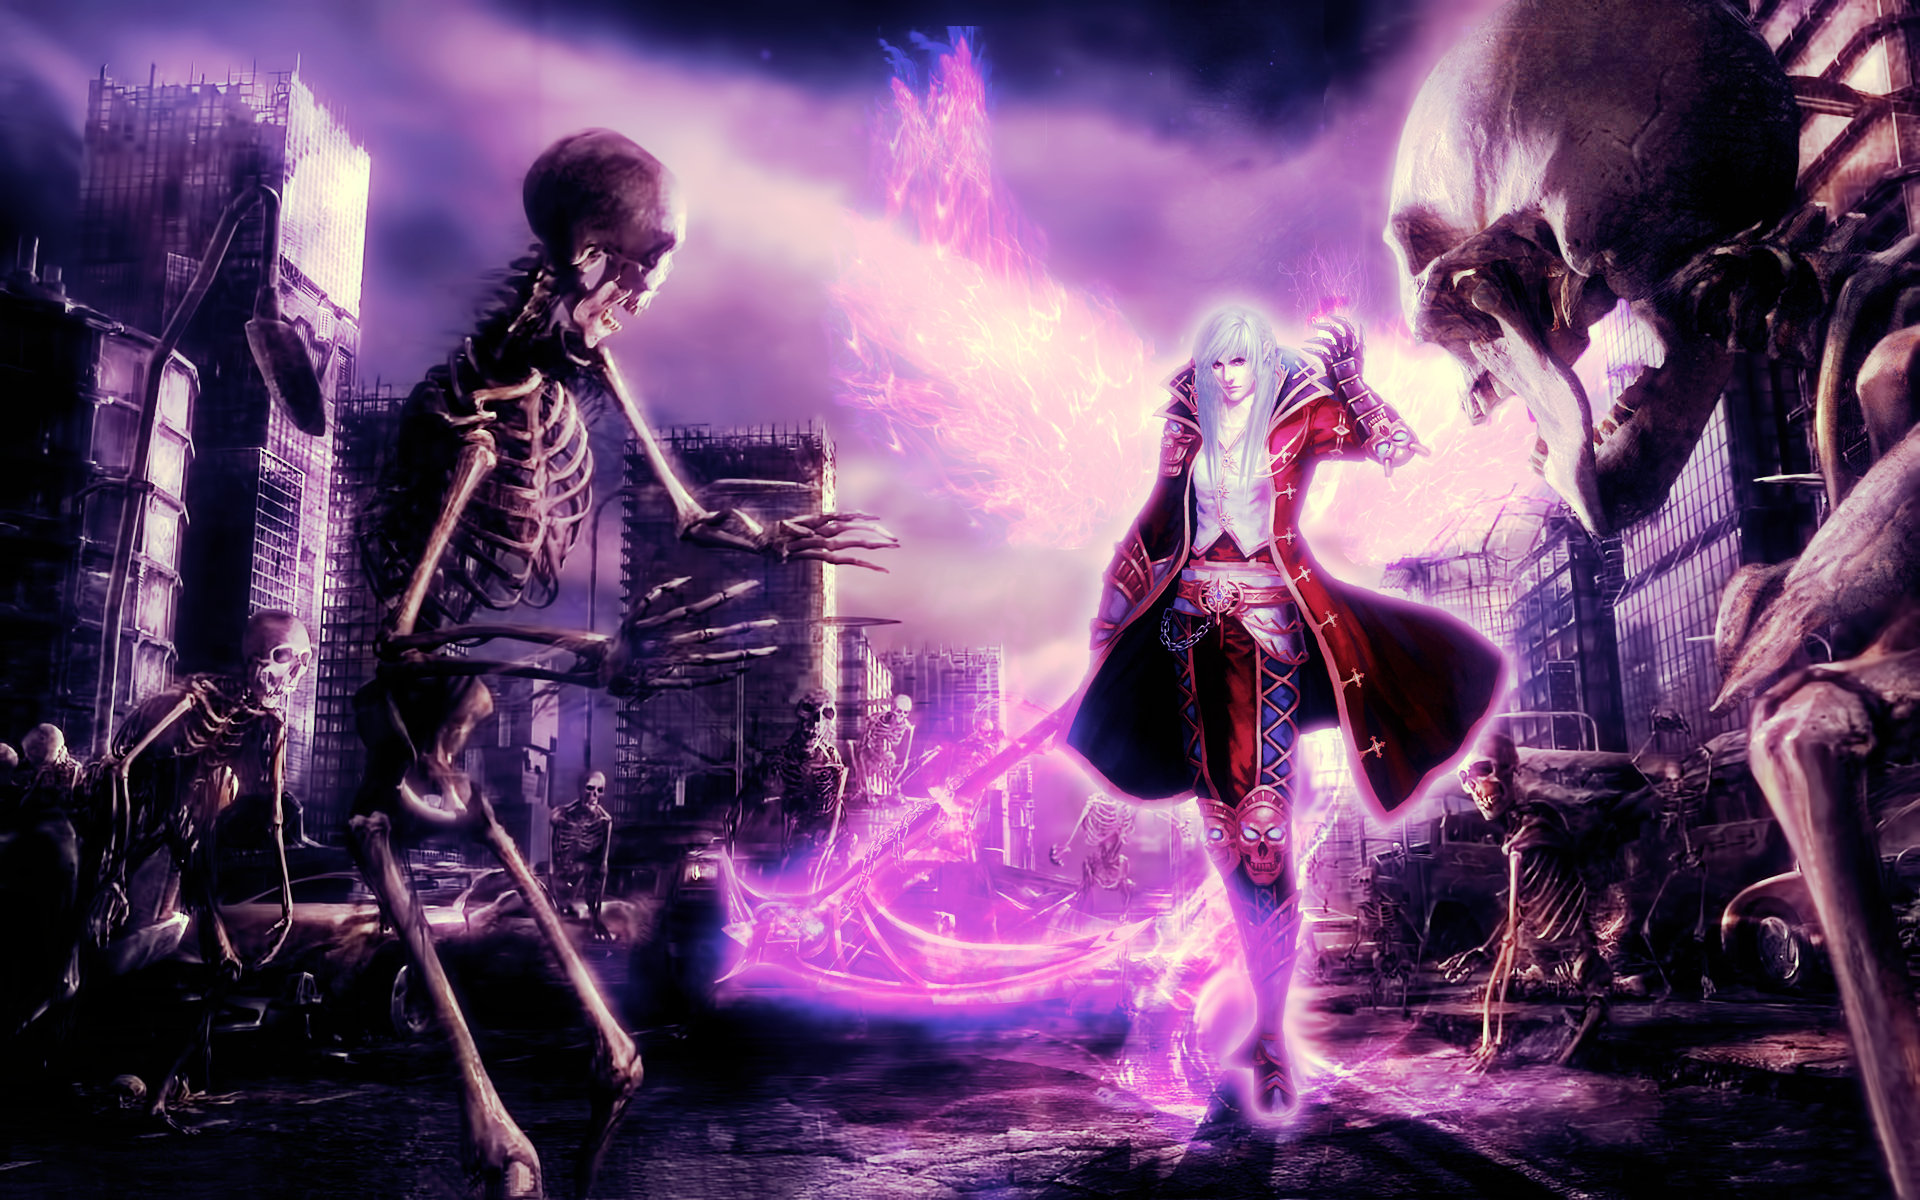 Epic Anime Backgrounds 69 Wallpapers – HD